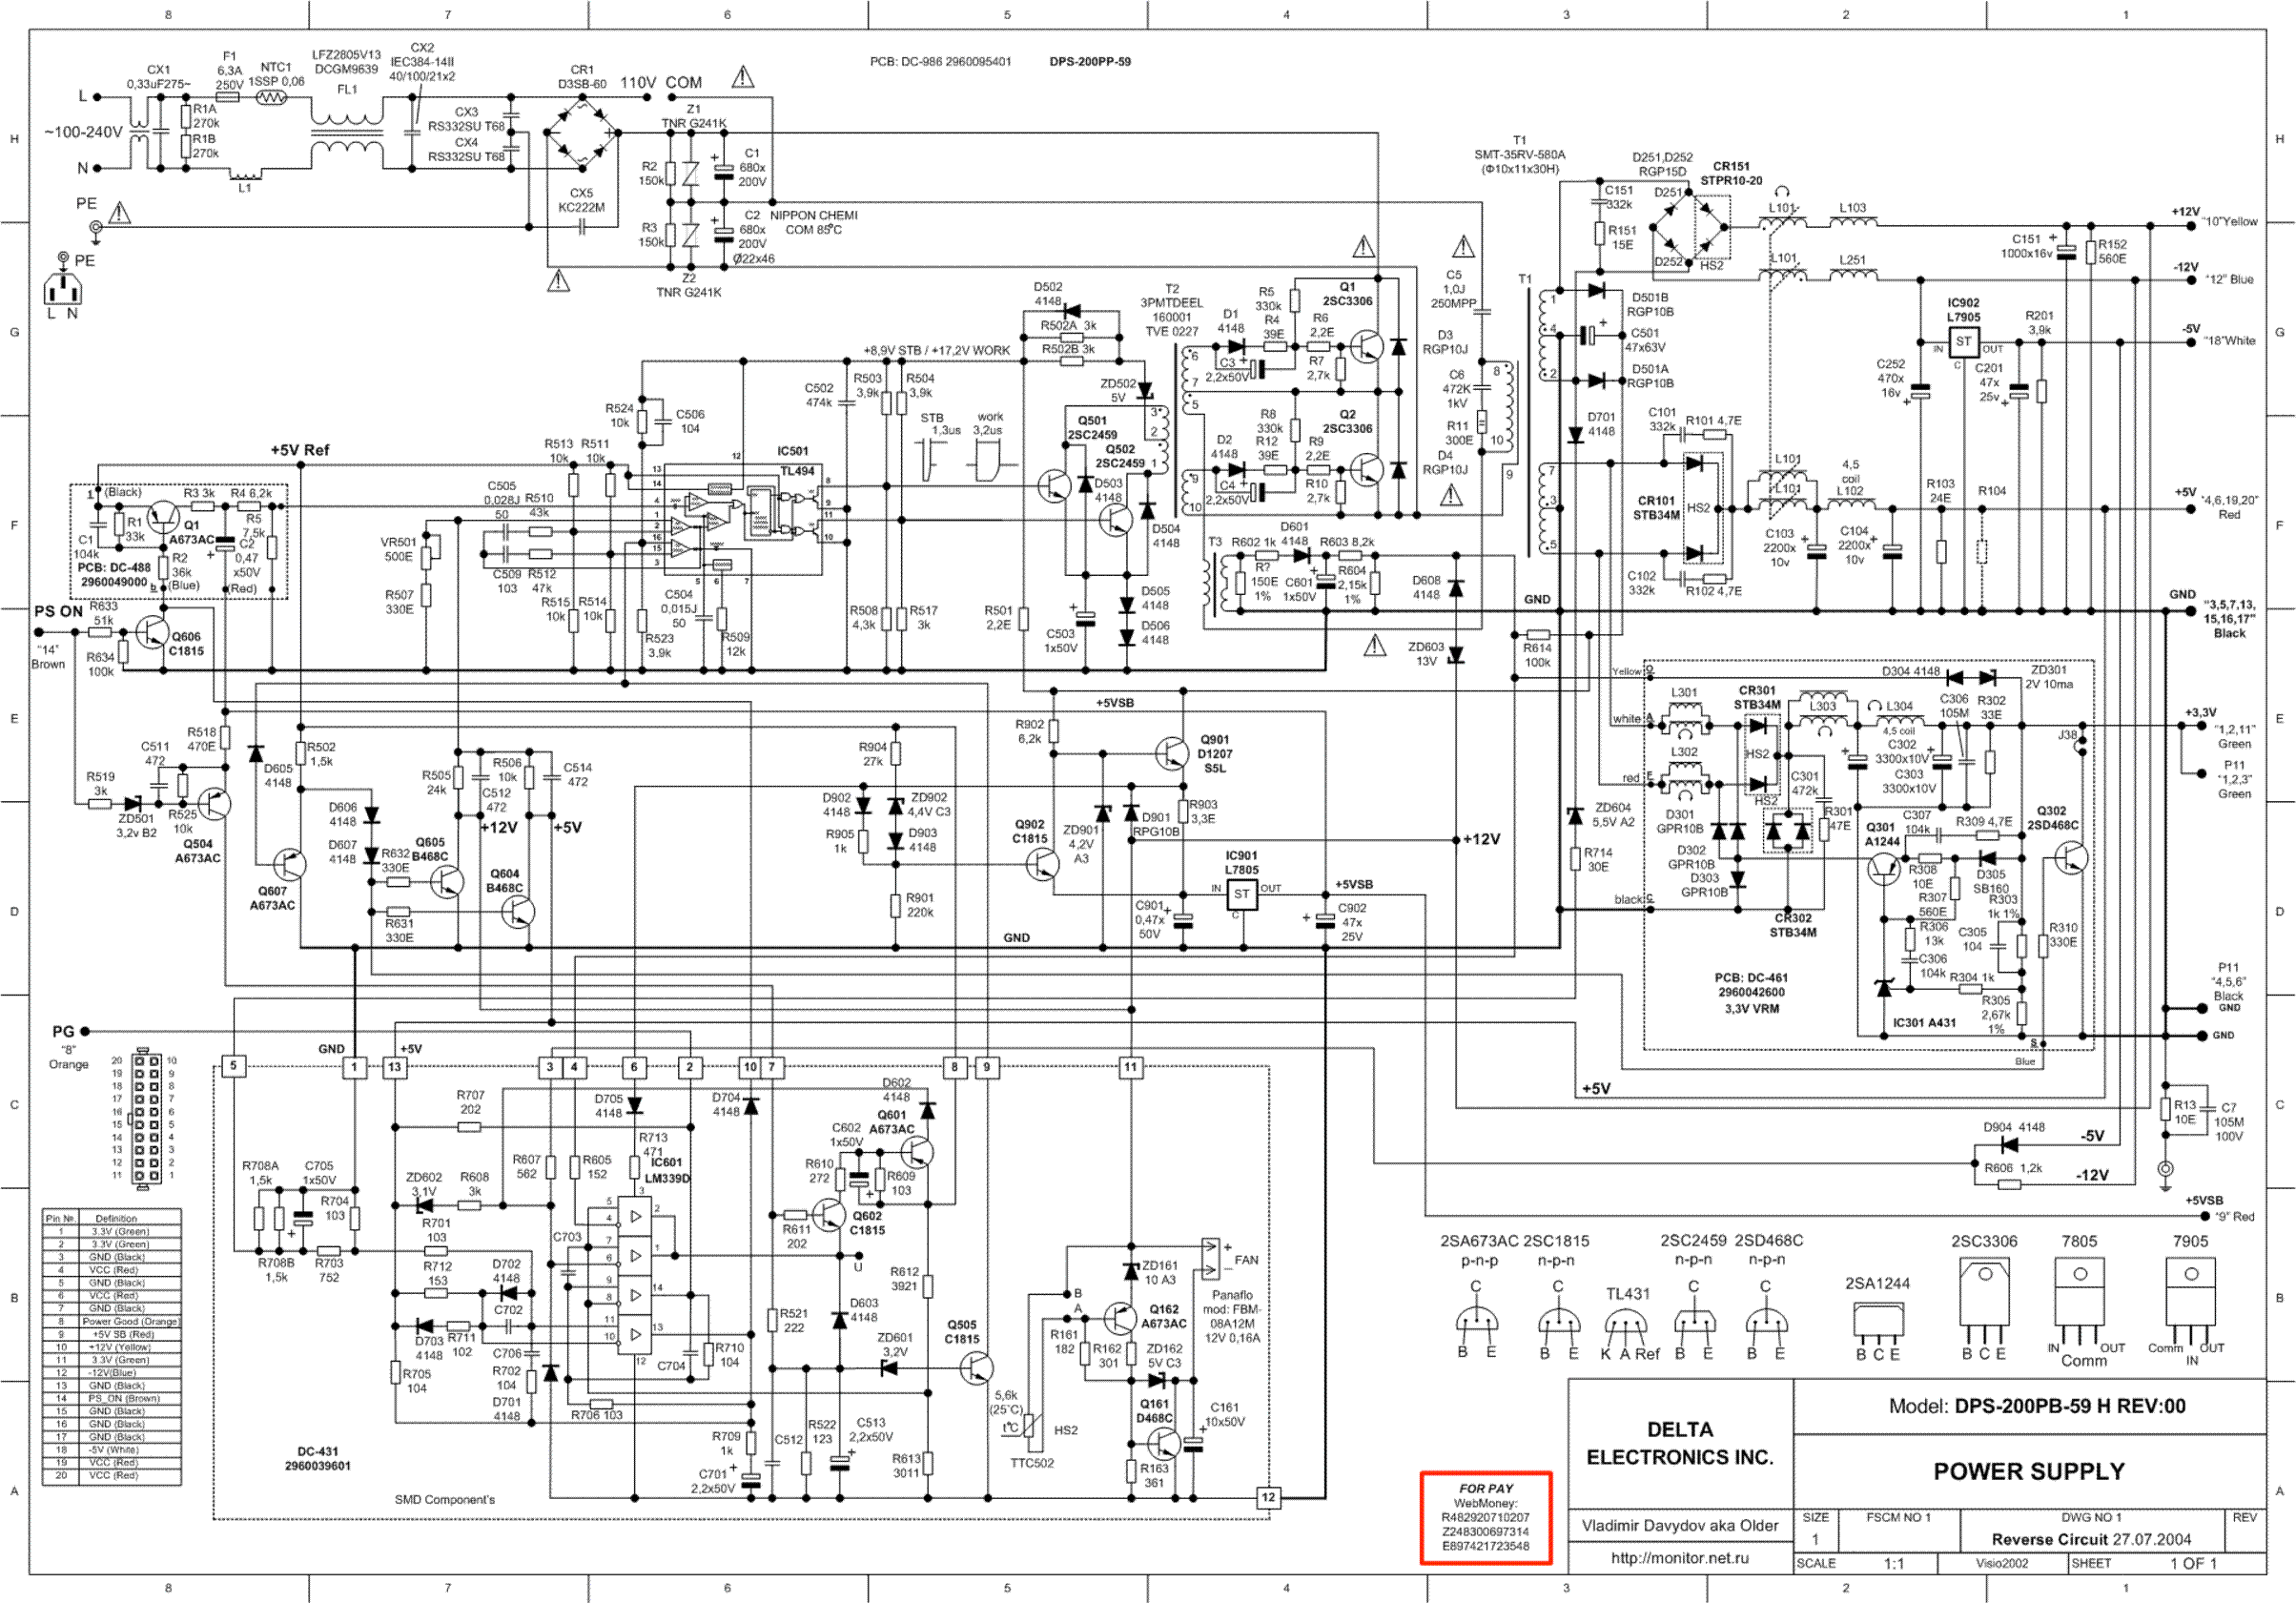 Atx Power Supply Circuit Diagram Pdf Great Installation Of Wiring Computer Schematic Delta Dps200pb 59h Rev 00 Service Manual Download Rh Elektrotanya Com 400w